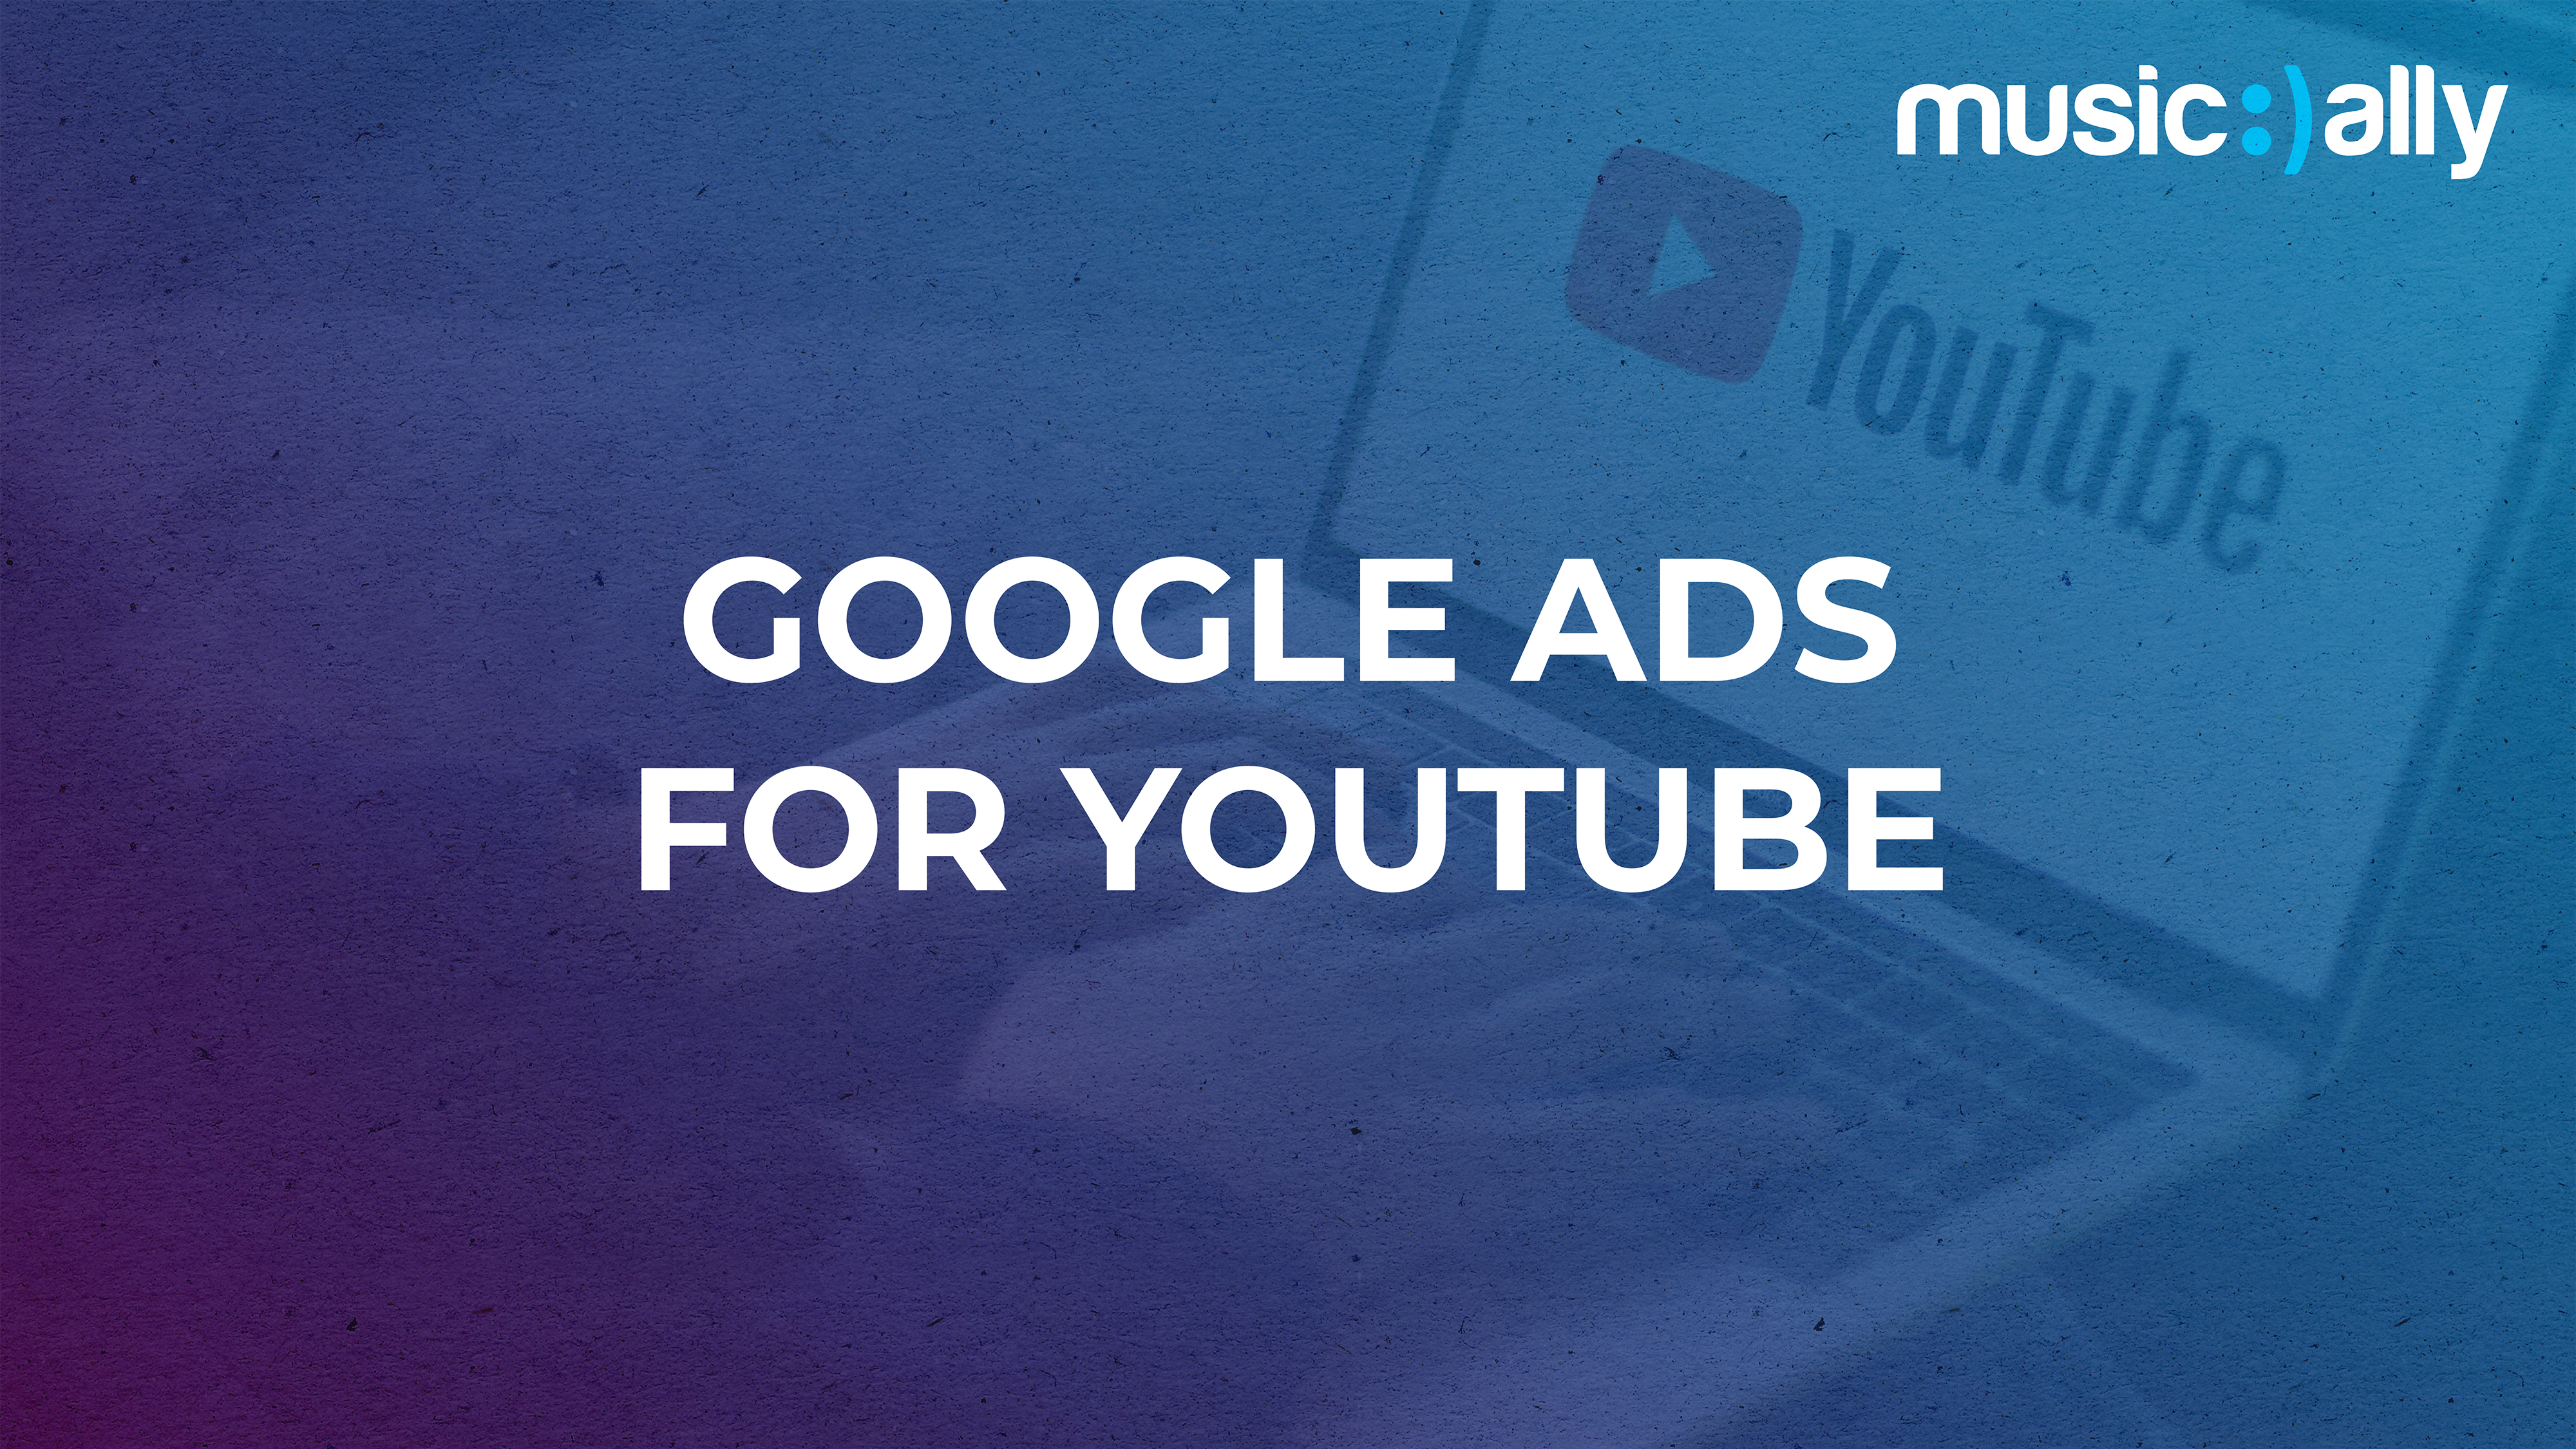 Google Ads For Youtube Music Ally